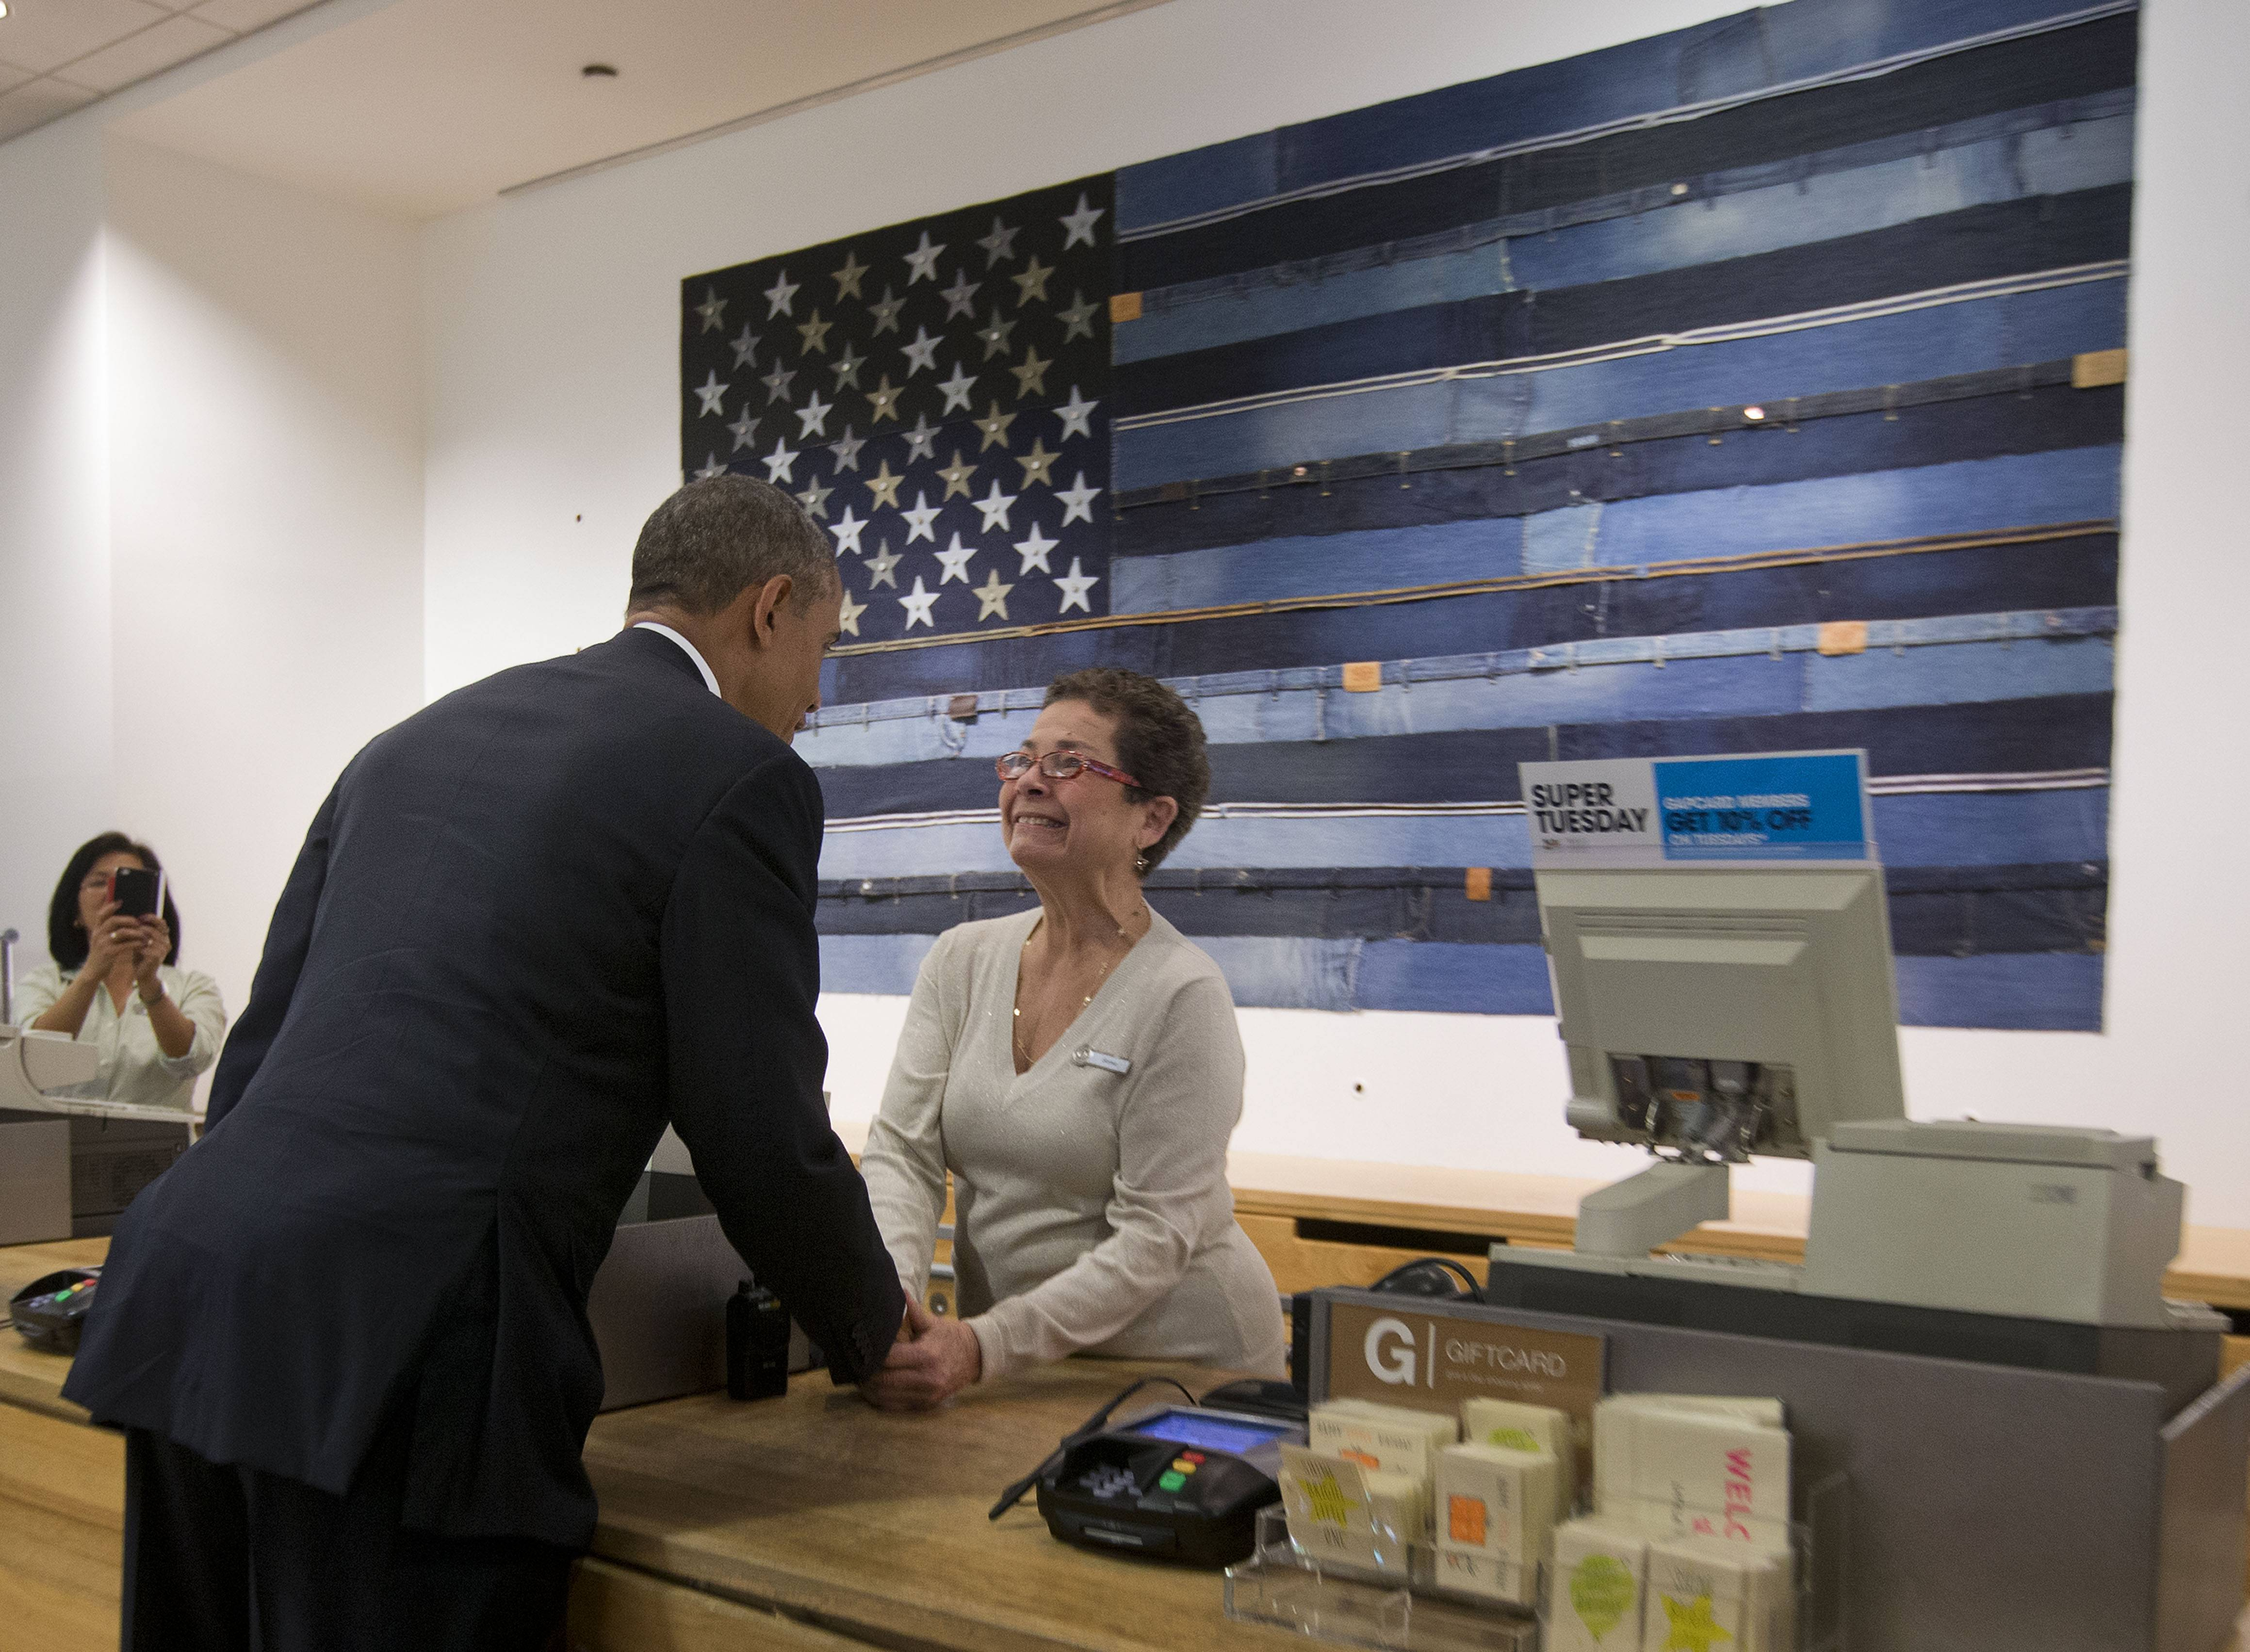 President Barack Obama greets cashier Sonia Del Gatto at a GAP clothing store in Manhattan during his unannounced shopping visit, Tuesday. The White House is launching a campaign to promote a host of economic issues facing women, a key voting bloc in this year's midterm election.